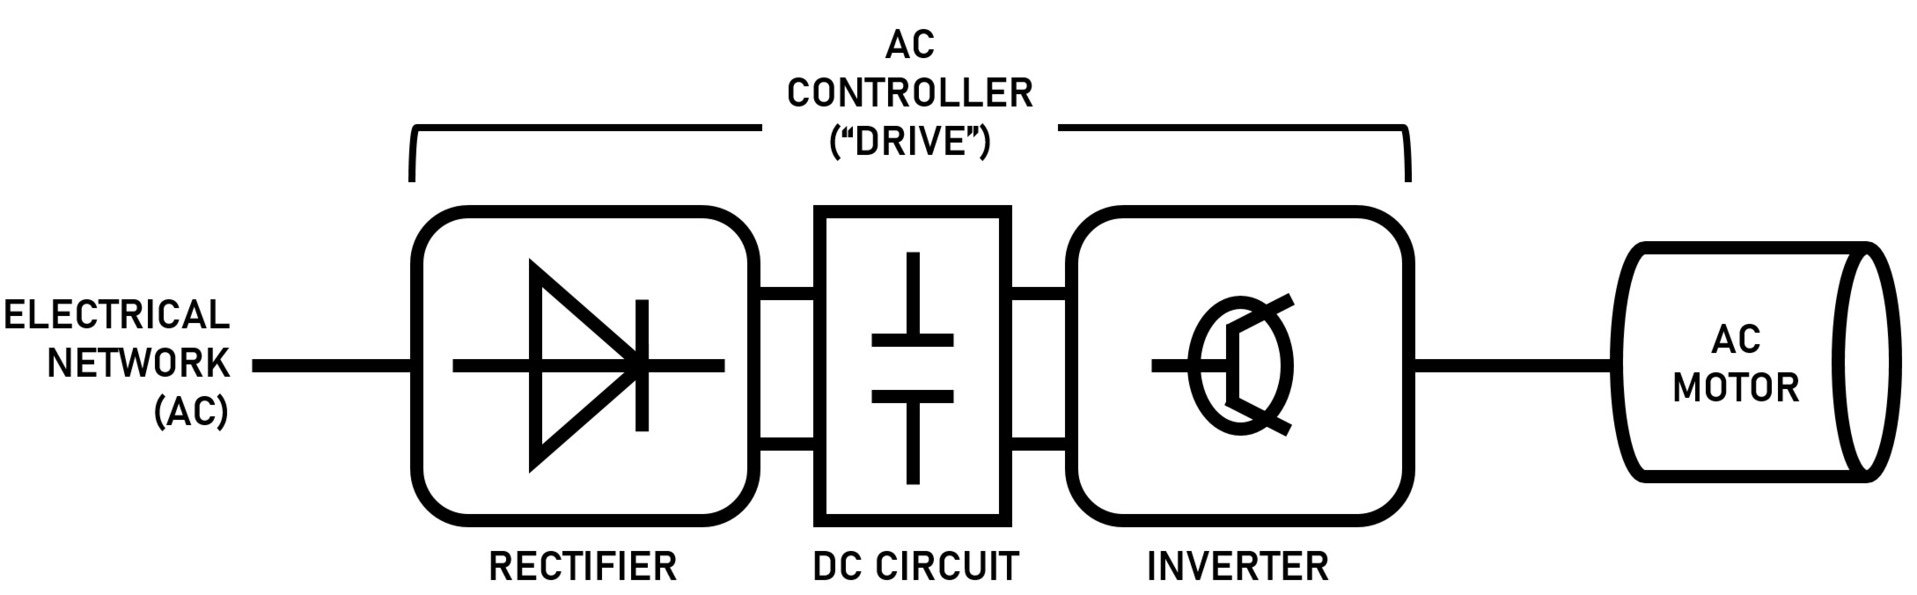 Inverter Diagram AC Motor Control